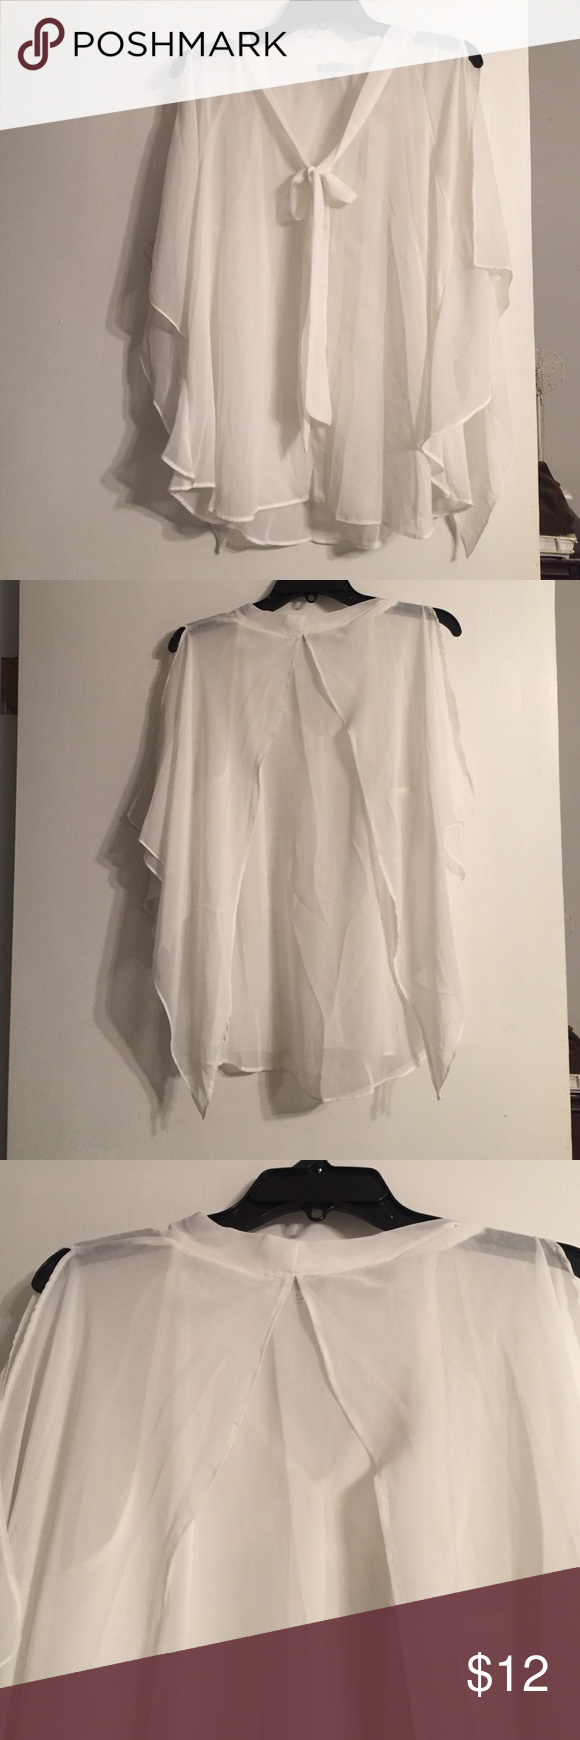 Do & Be white bat wing cape style top Sheer Do&Be blouse with cape like split pieces that come across the shoulders maybe even considered a dolman or batwing style - upon taking picture notices a very small stain on the sash you tie at the neck. Will be priced accordingly. ⭐️ please ask ALL questions before purchasing Do & Be Tops Blouses